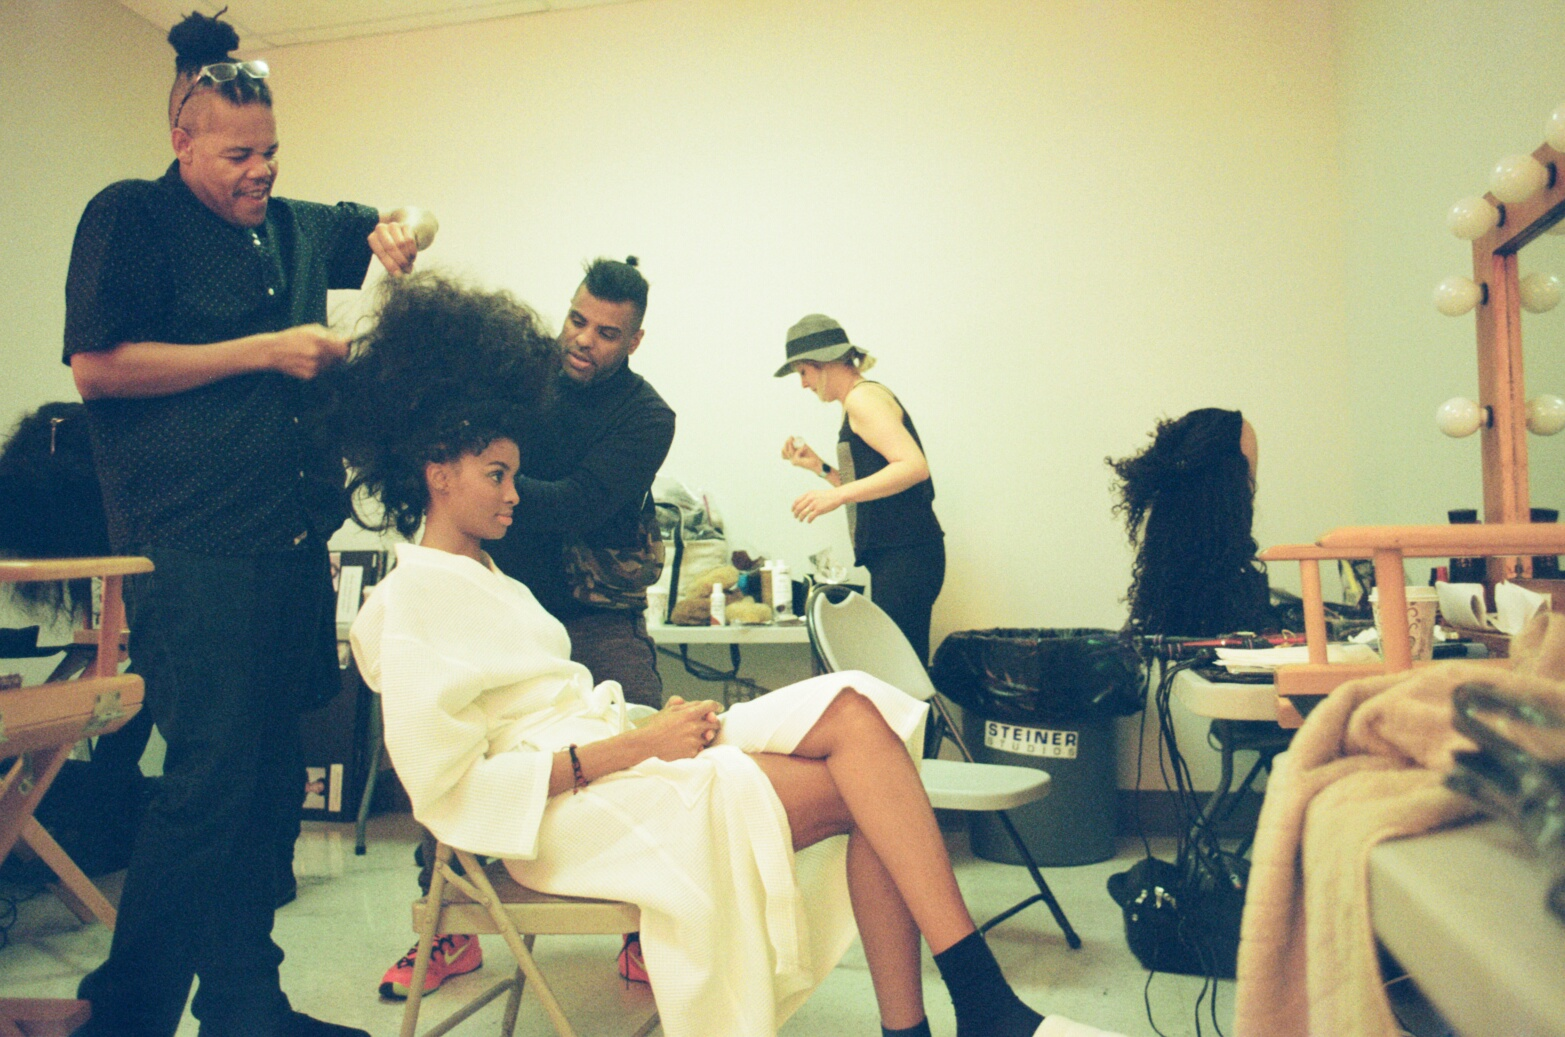 Tierra Benton gets prepared for set with celebrity stylist Chucki Love and his team of talented experts.